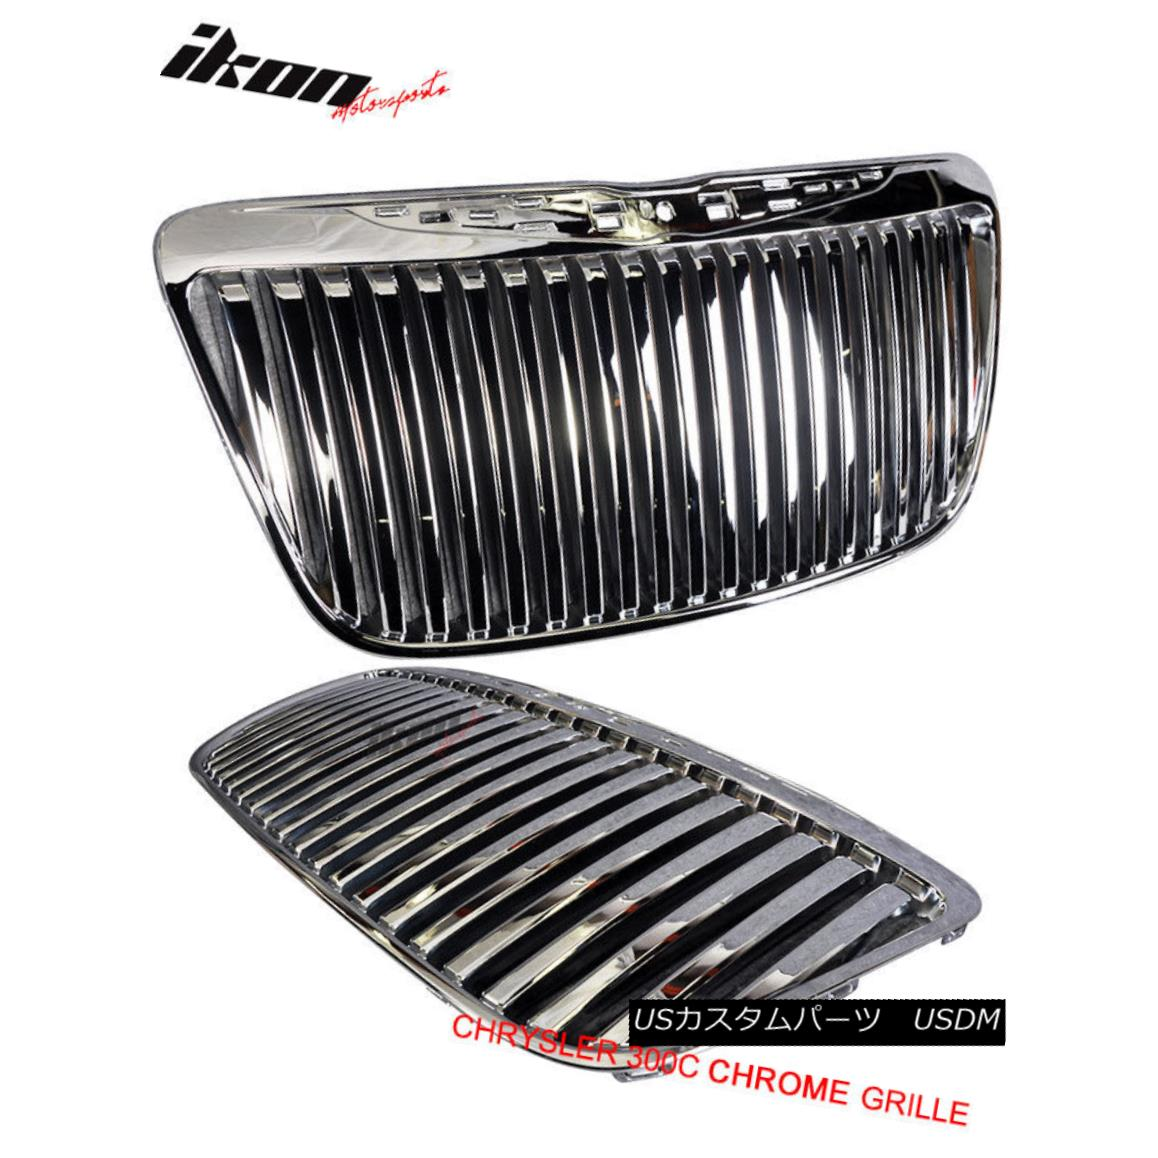 グリル For 11-12 Chrysler 300C Vertical Replacement Grill Front Grille Chrome 11-12 Chrysler 300C用垂直置きグリルフロントグリルクローム